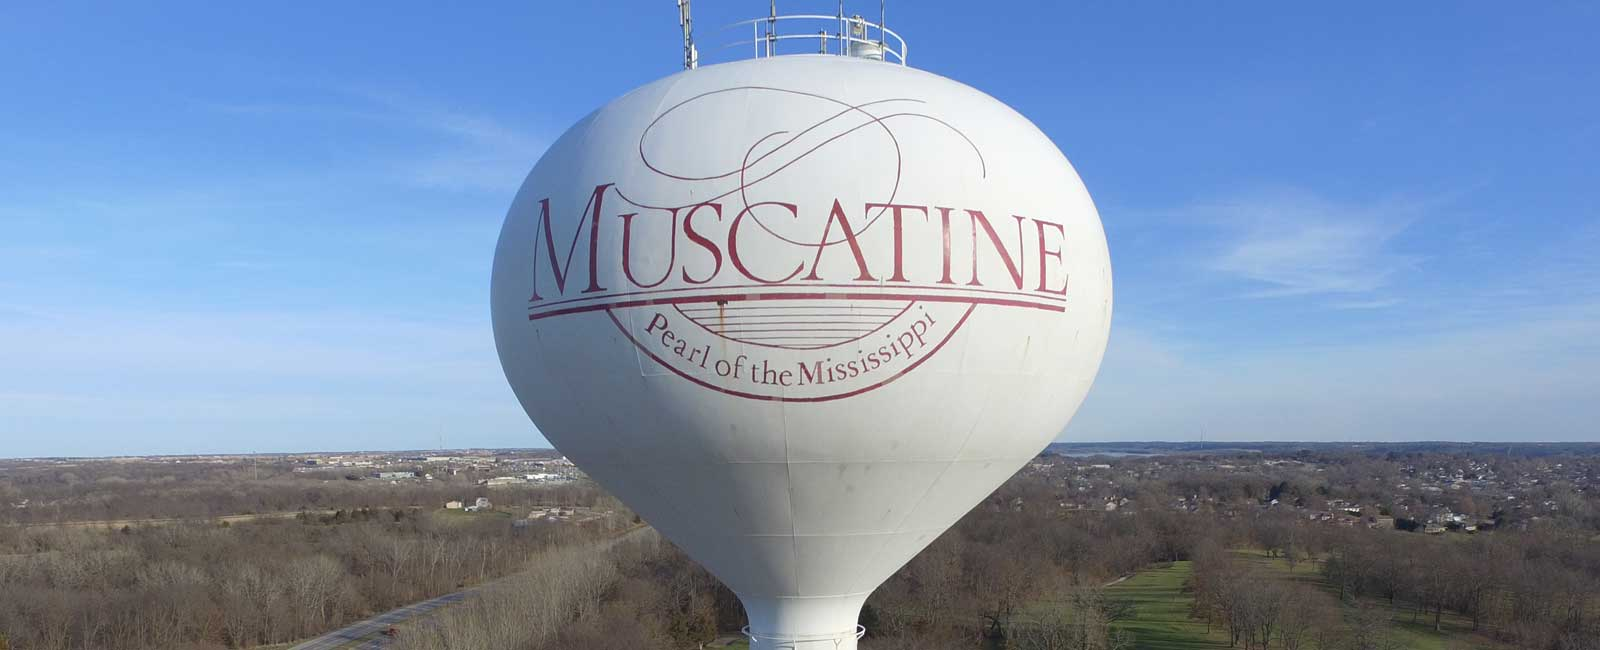 Muscatine Power & Water Tower